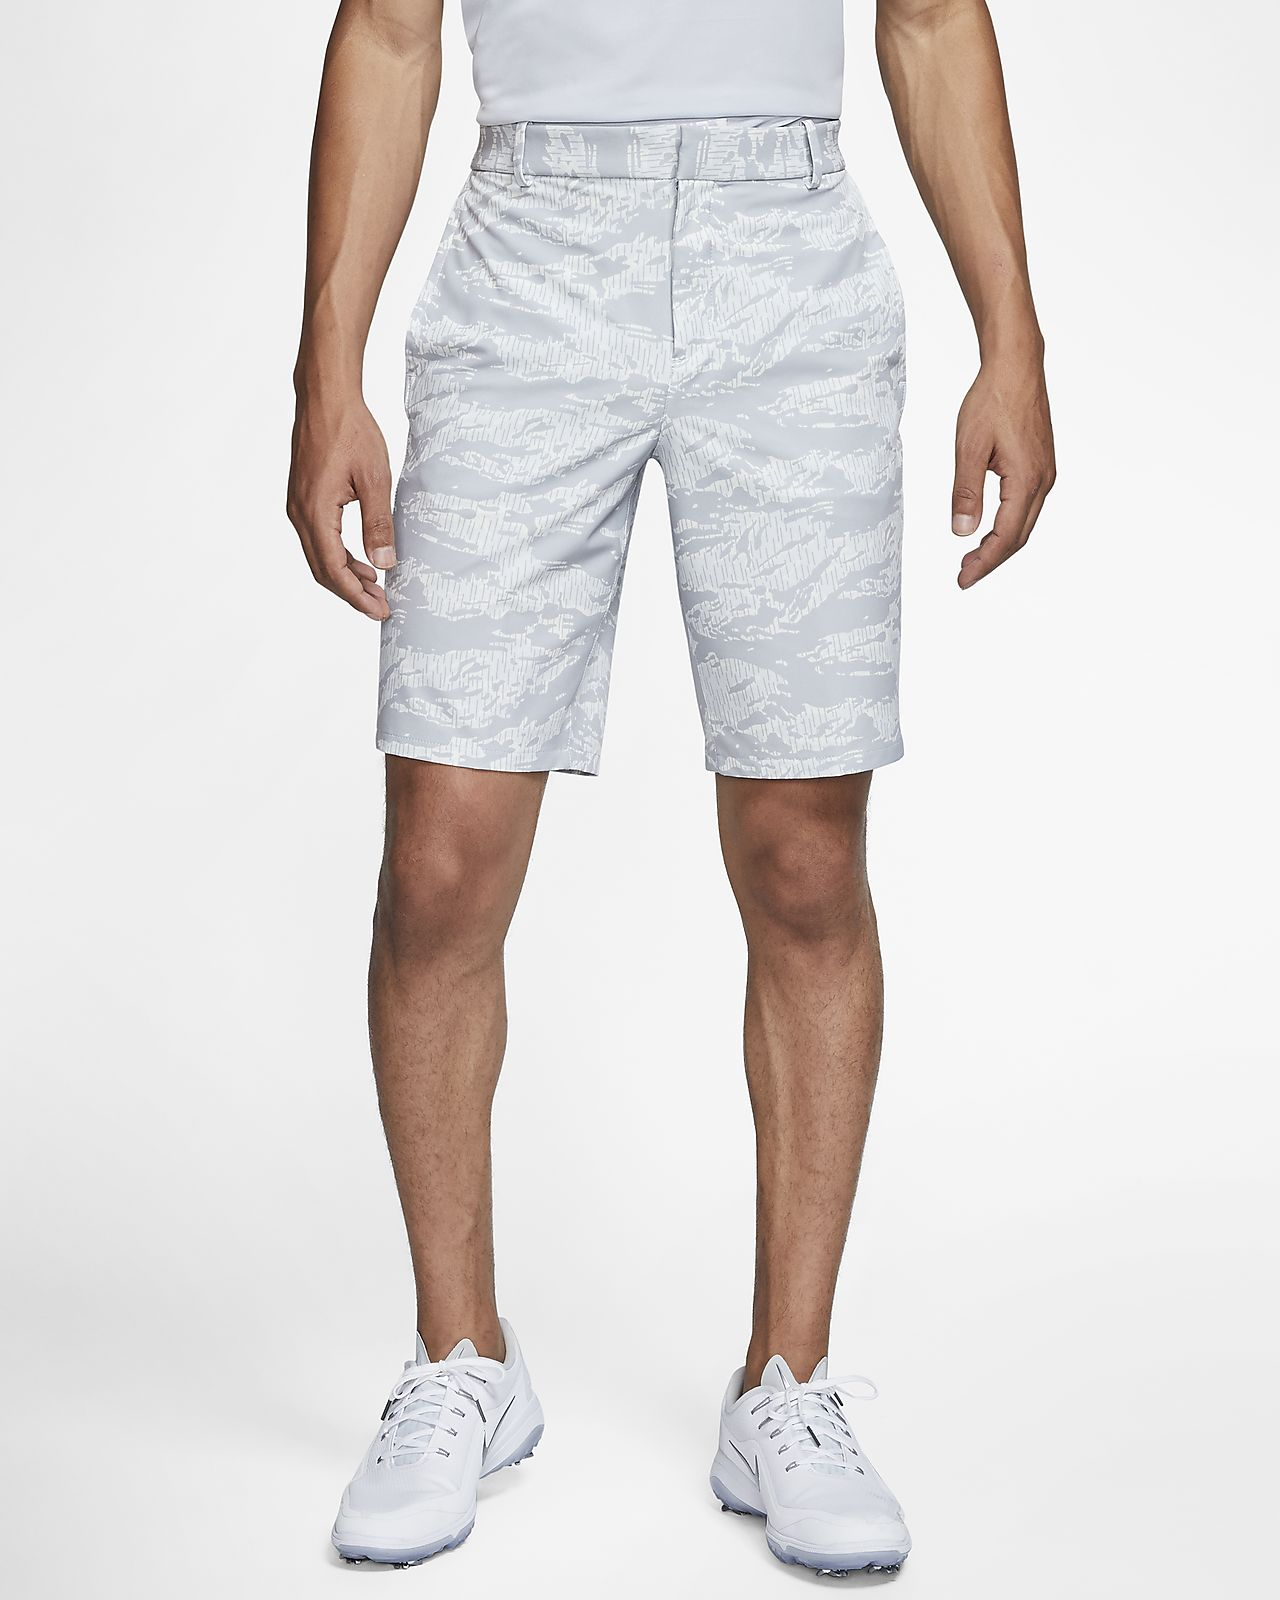 Nike Flex Men's Camo Golf Shorts